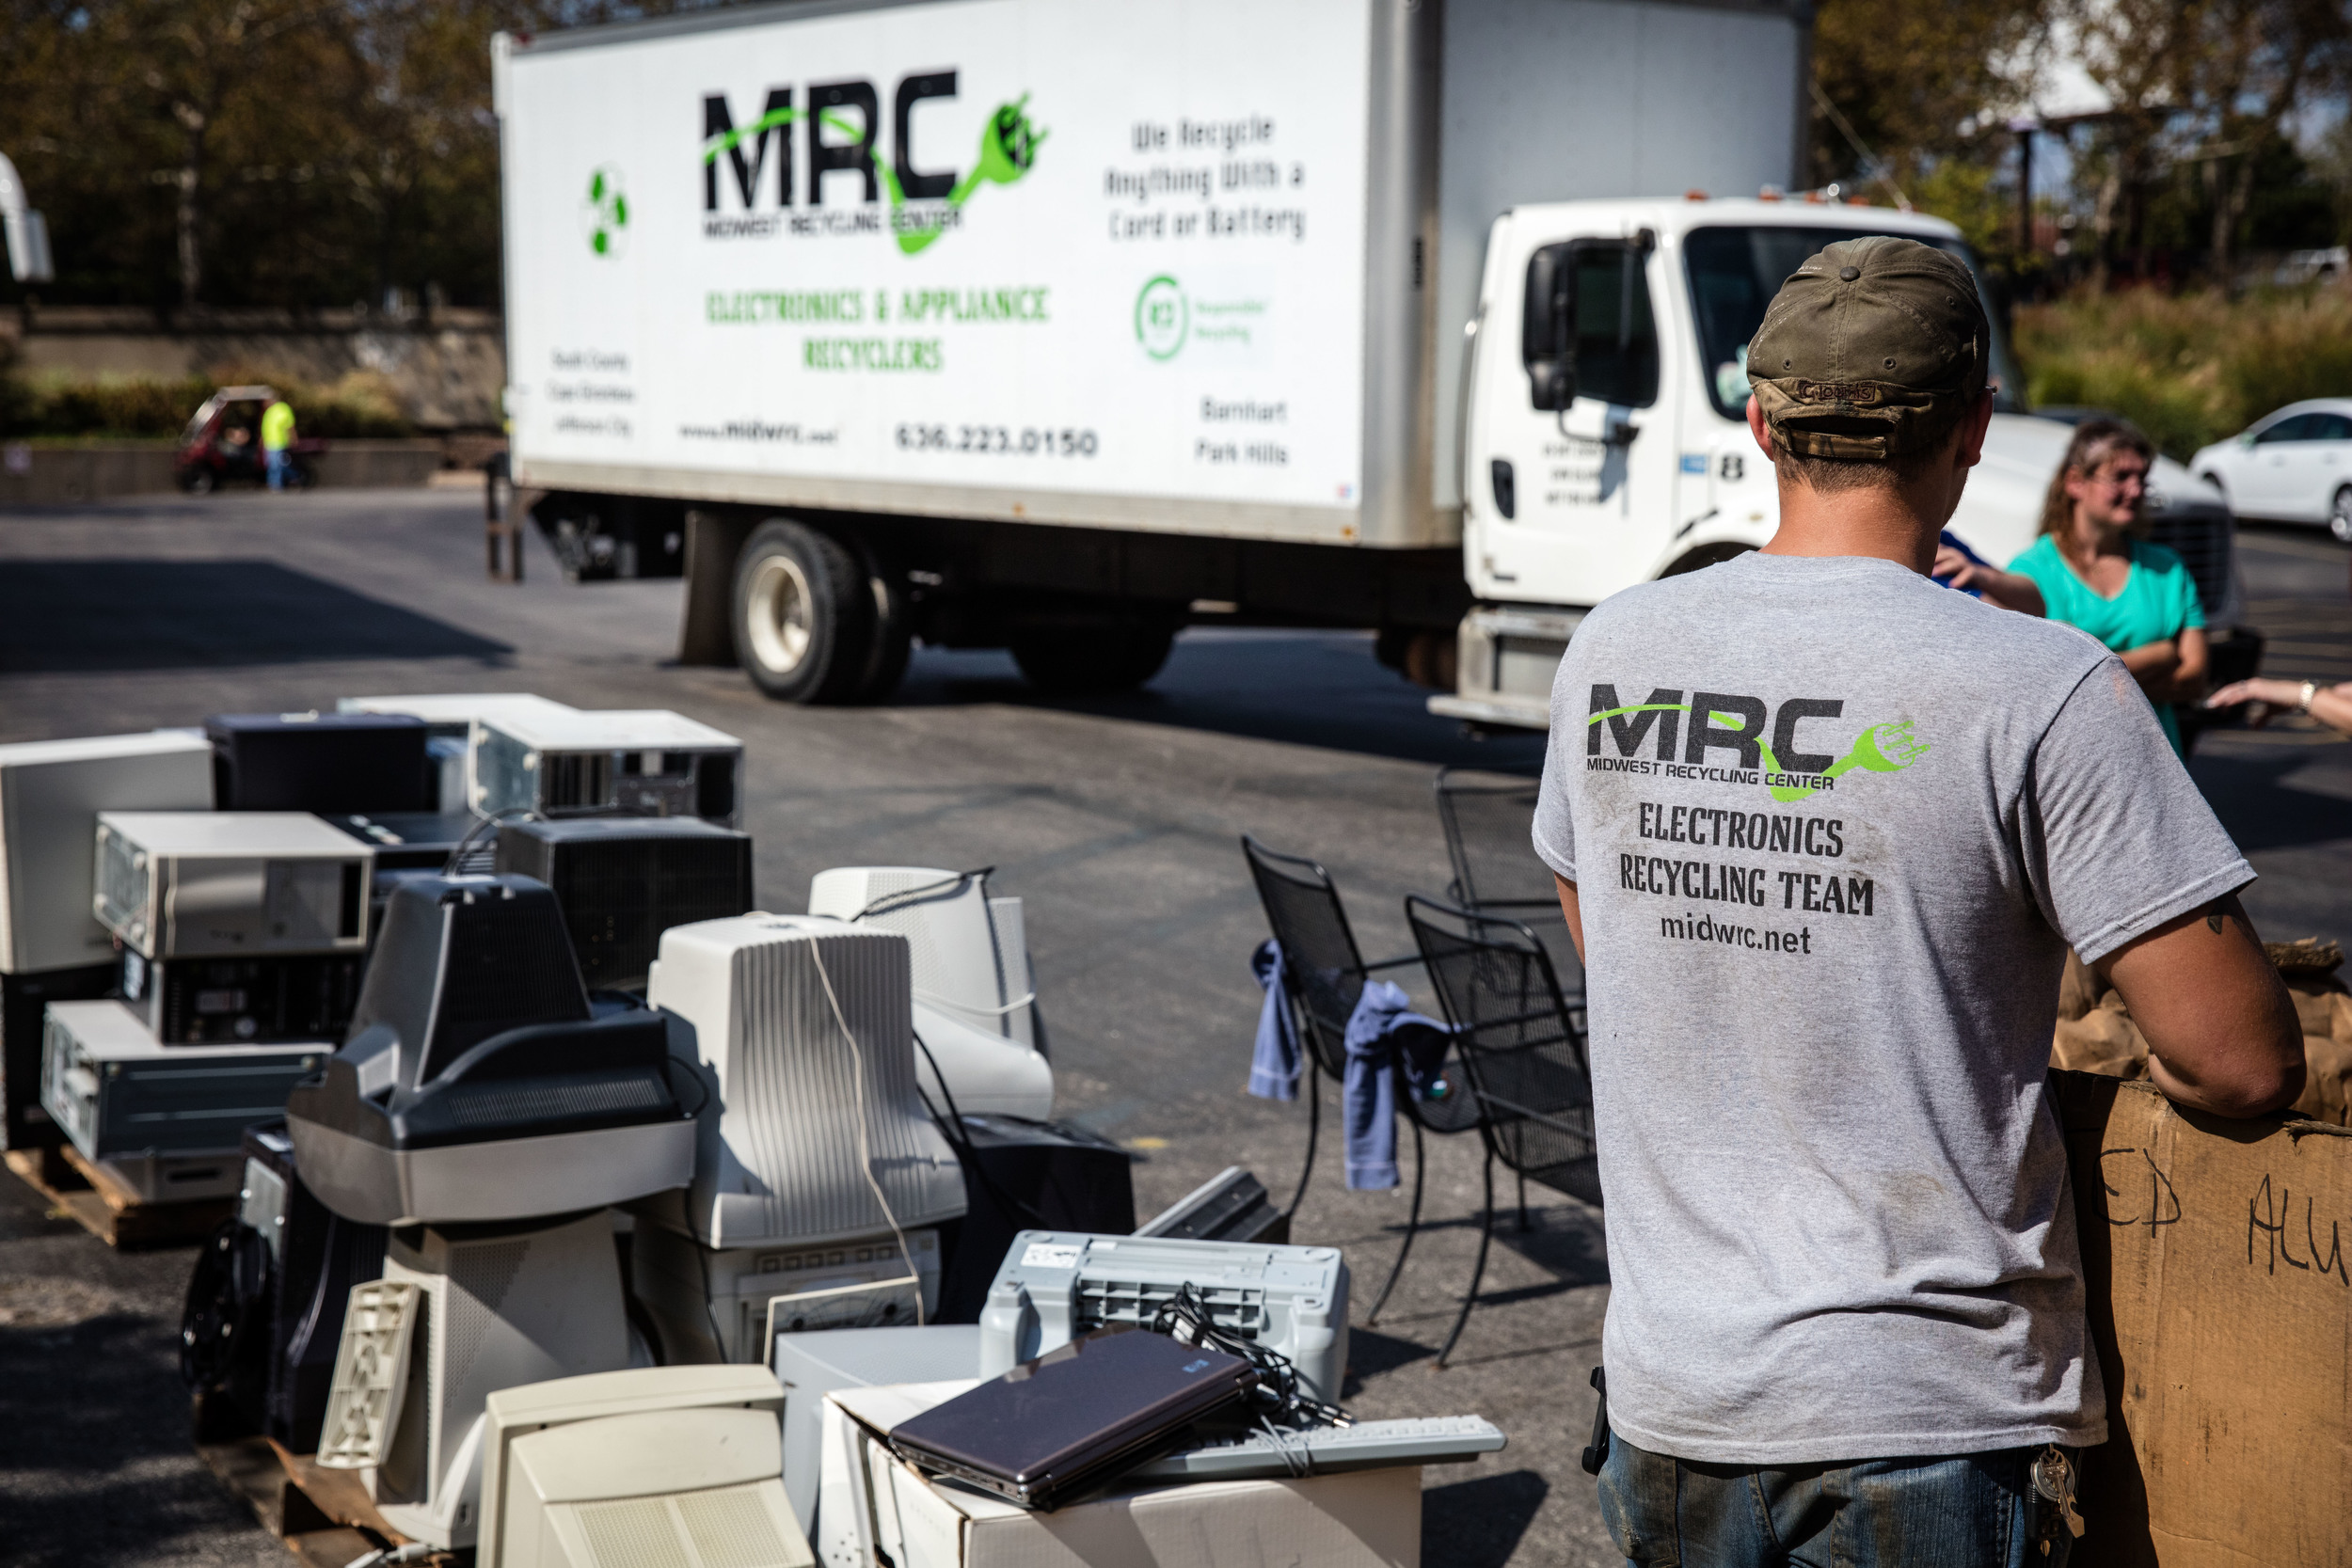 What to Expect at MRC Electronics Recycling Events